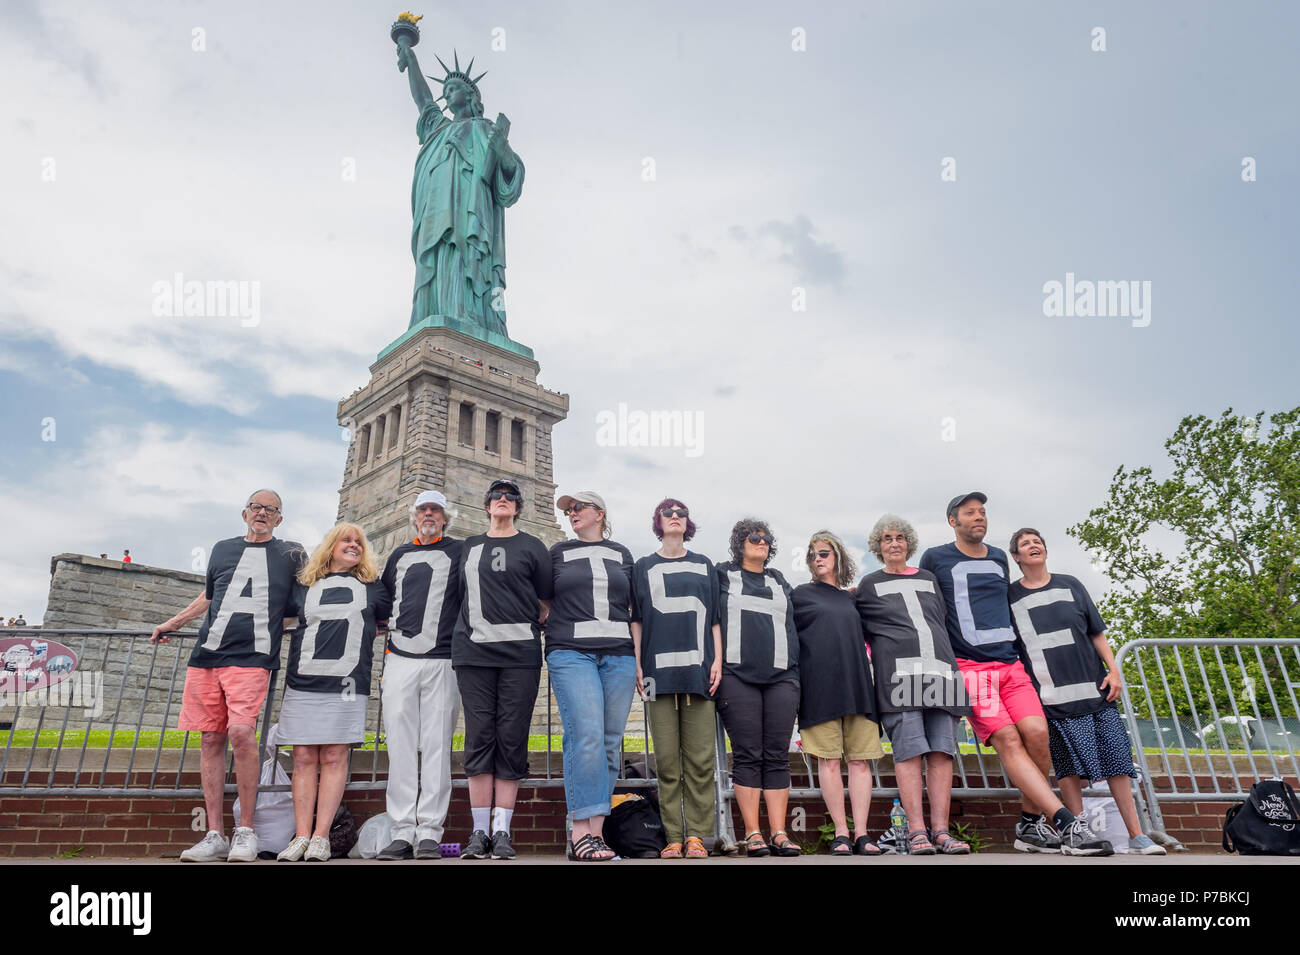 New York, United States. 04th July, 2018. Reflecting the sentiments of last week's nationwide End Family Separation protests, members of Rise and Resist planned and executed a non-violent banner drop and human banner action at the Statue of Liberty on Independence Day. An ABOLISH ICE banner was hung, and activists spelled out the same message on their shirts. Credit: Erik McGregor/Pacific Press/Alamy Live News Stock Photo